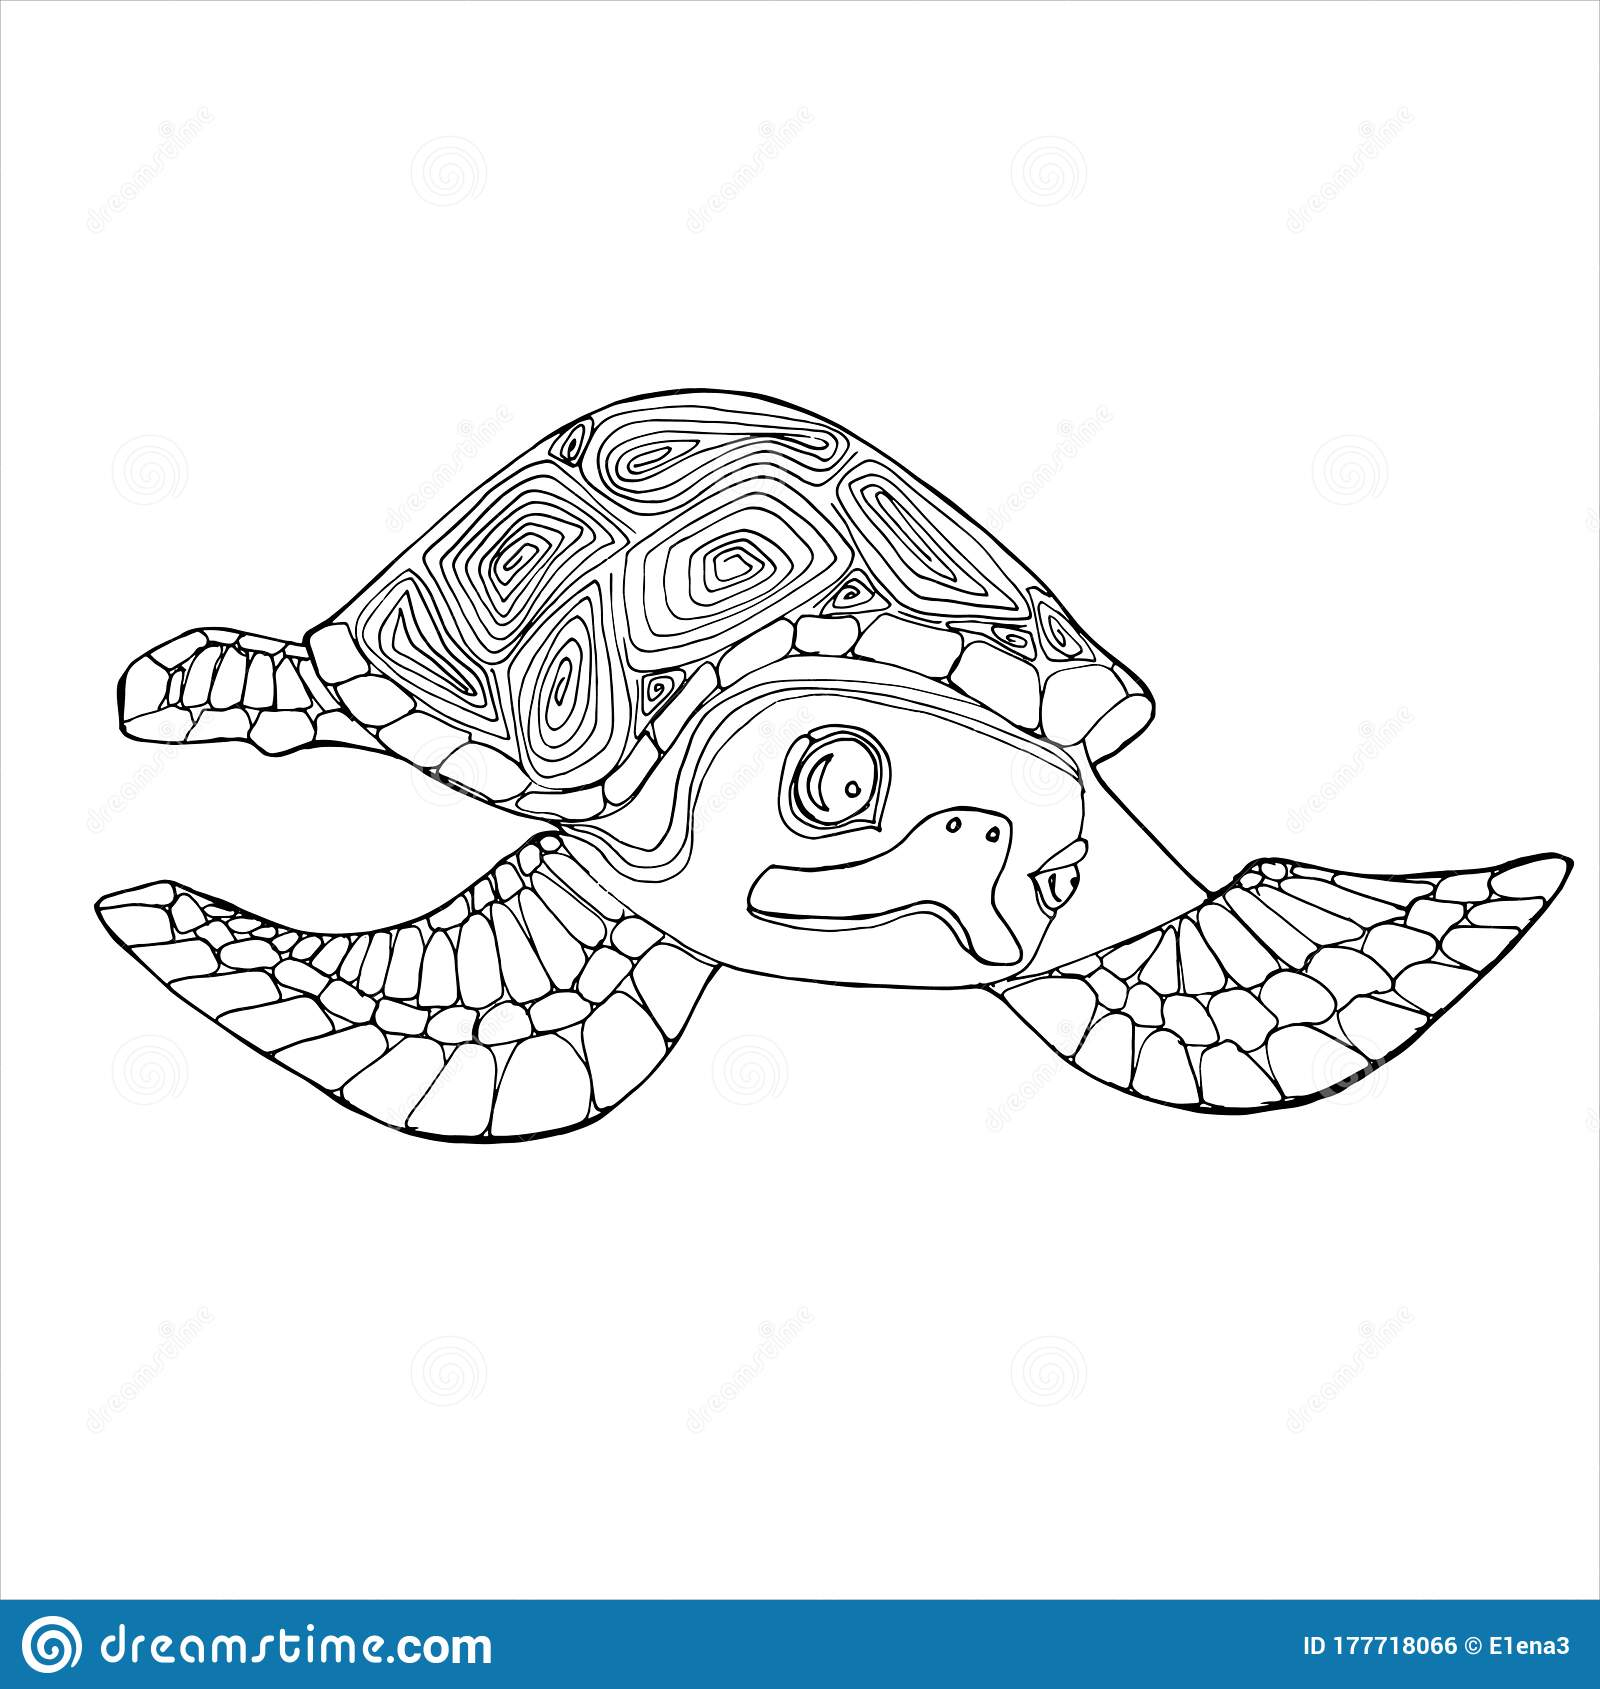 Sea Turtle Coloring Book Hand Drawing Coloring Book For Children And Adults Stock Illustration Illustration Of Funny Effect 177718066